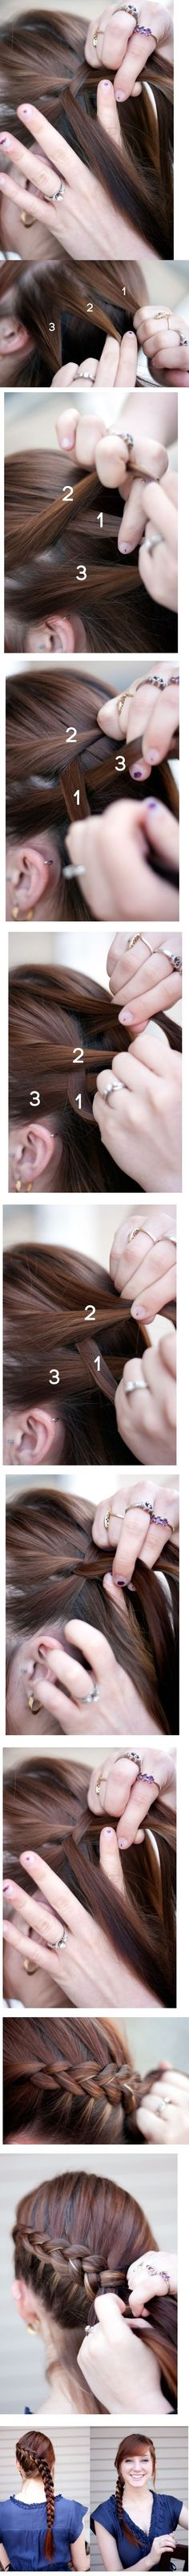 Clear images on how to french side braid! very simple; looks fun and girly!